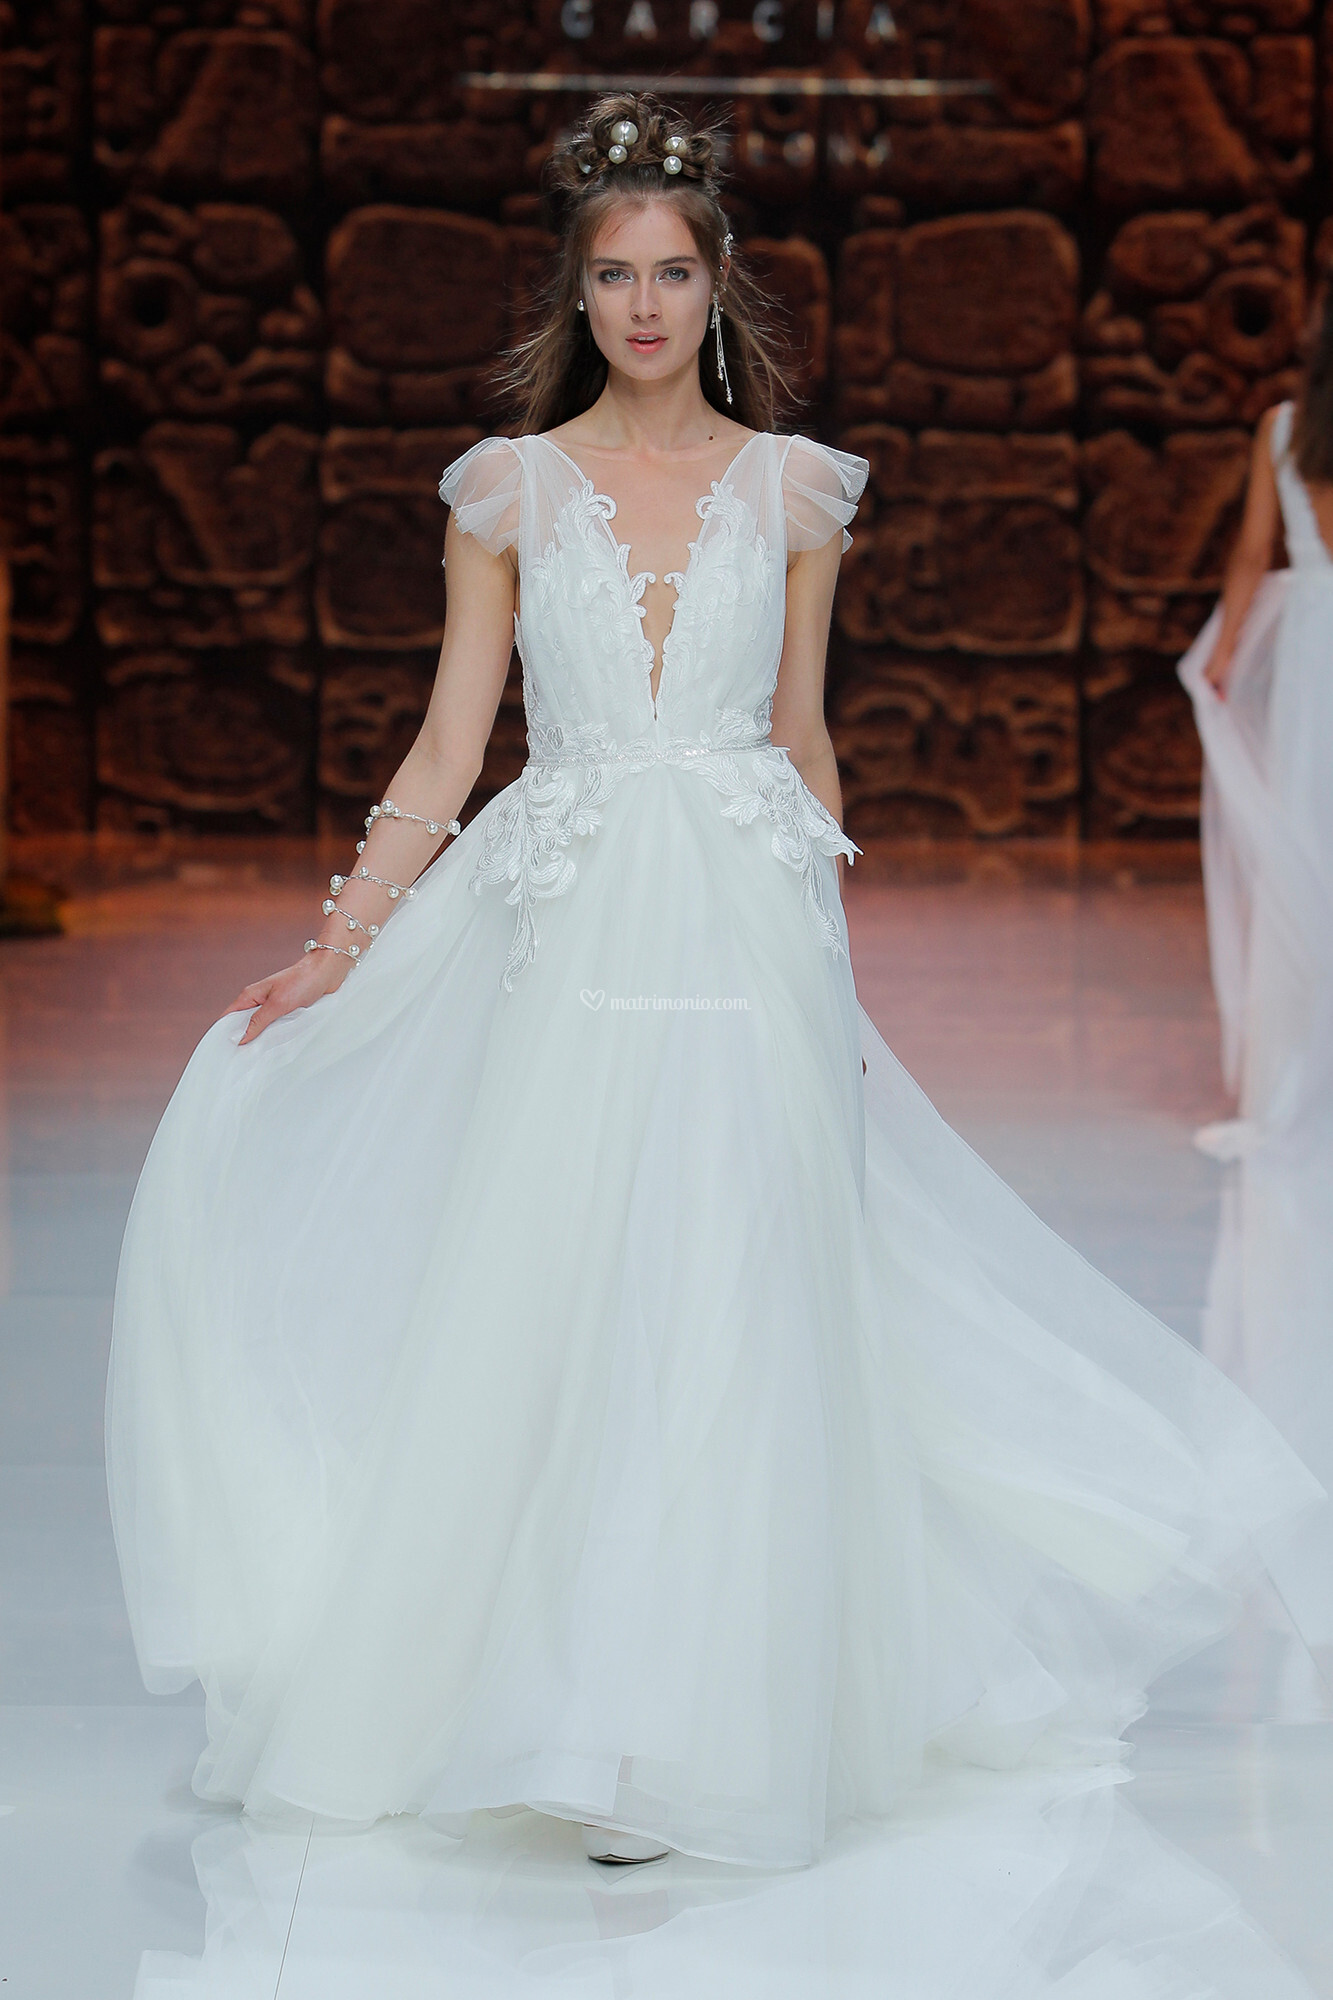 Outstanding Vestido Novia Campestre Sketch - All Wedding Dresses ...